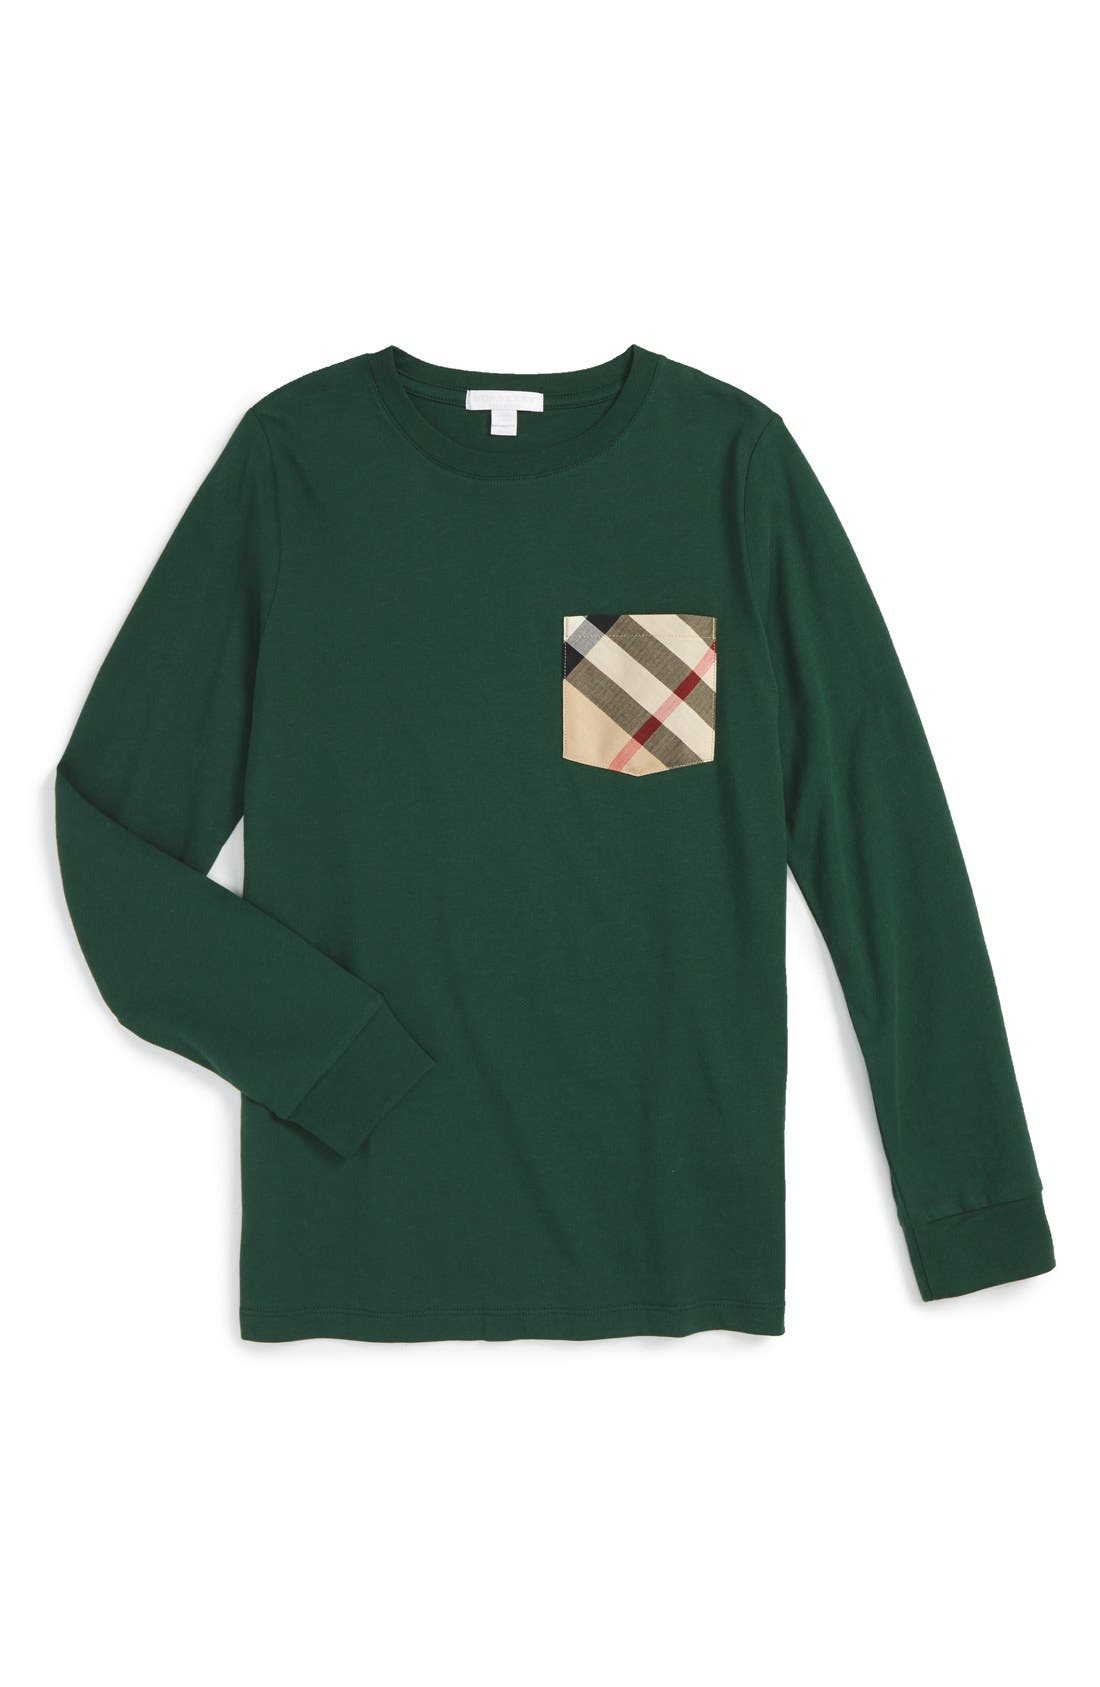 Alternate Image 1 Selected - Burberry Check Pocket T-Shirt (Little Boys & Big Boys)